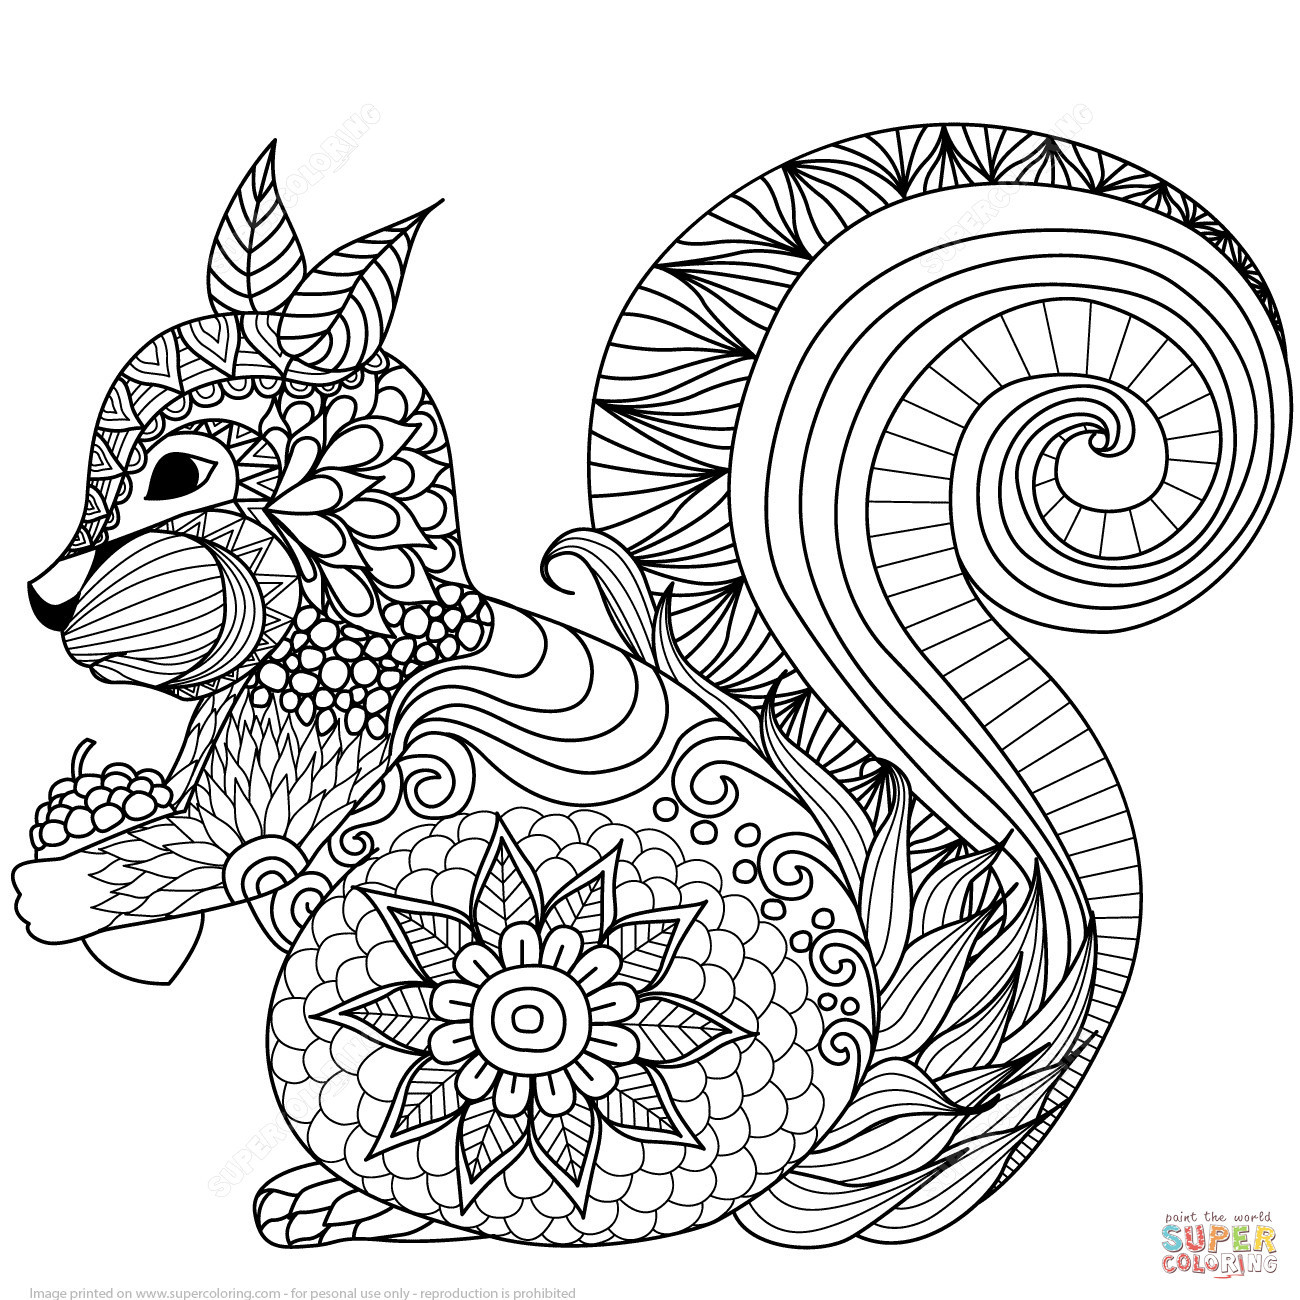 Free Printable Zentangle Coloring Pages  to Print 9o - Save it to your computer